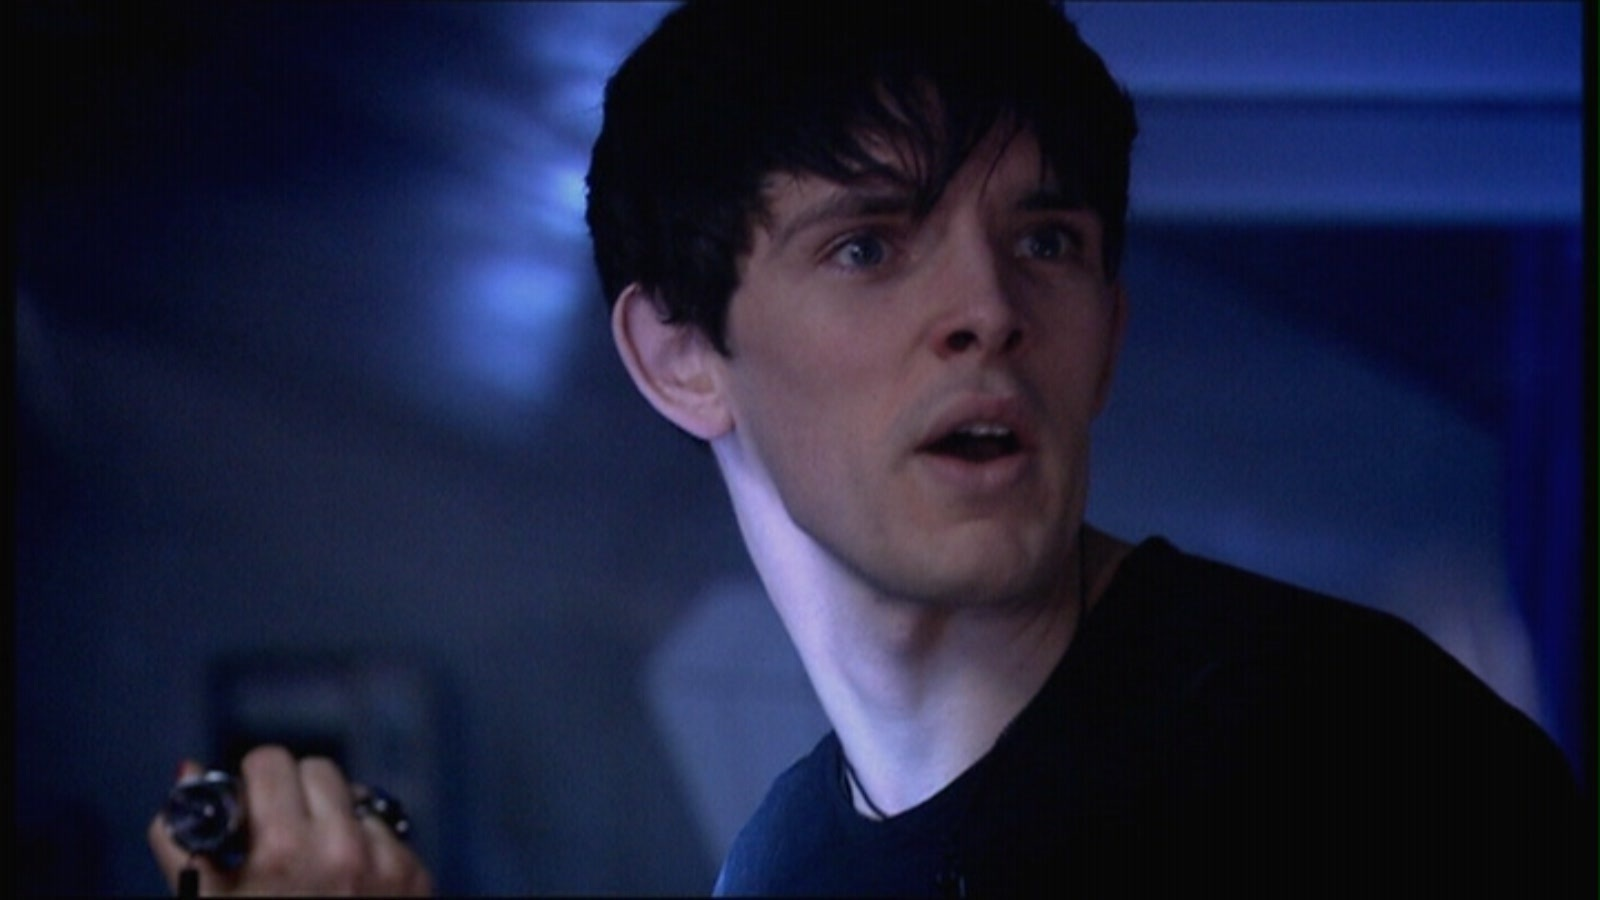 Doctor Who Colin Morgan Image 9919883 Fanpop